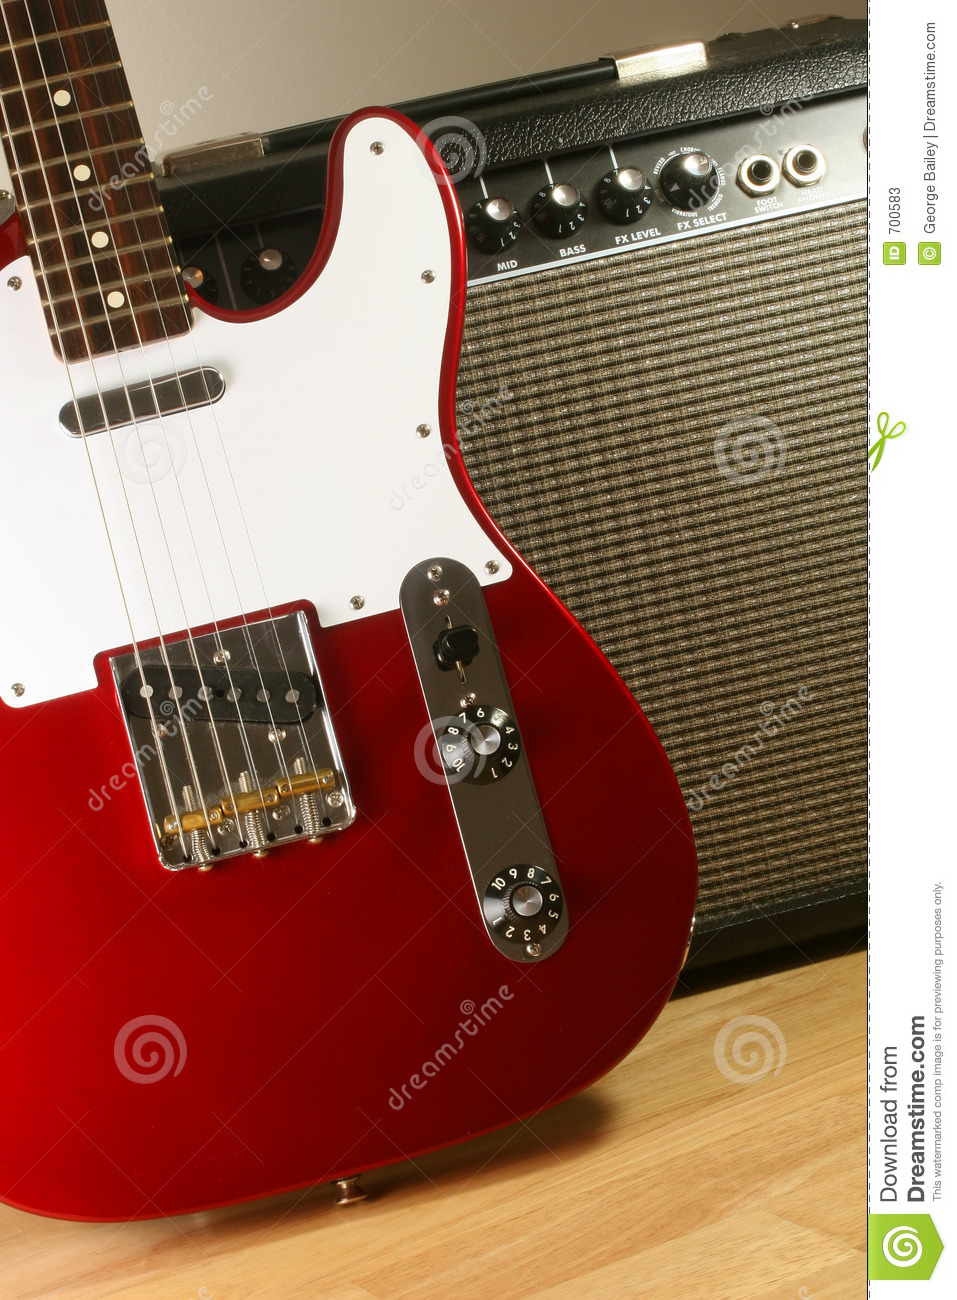 electric guitar and amp 2 stock photos image 700583. Black Bedroom Furniture Sets. Home Design Ideas